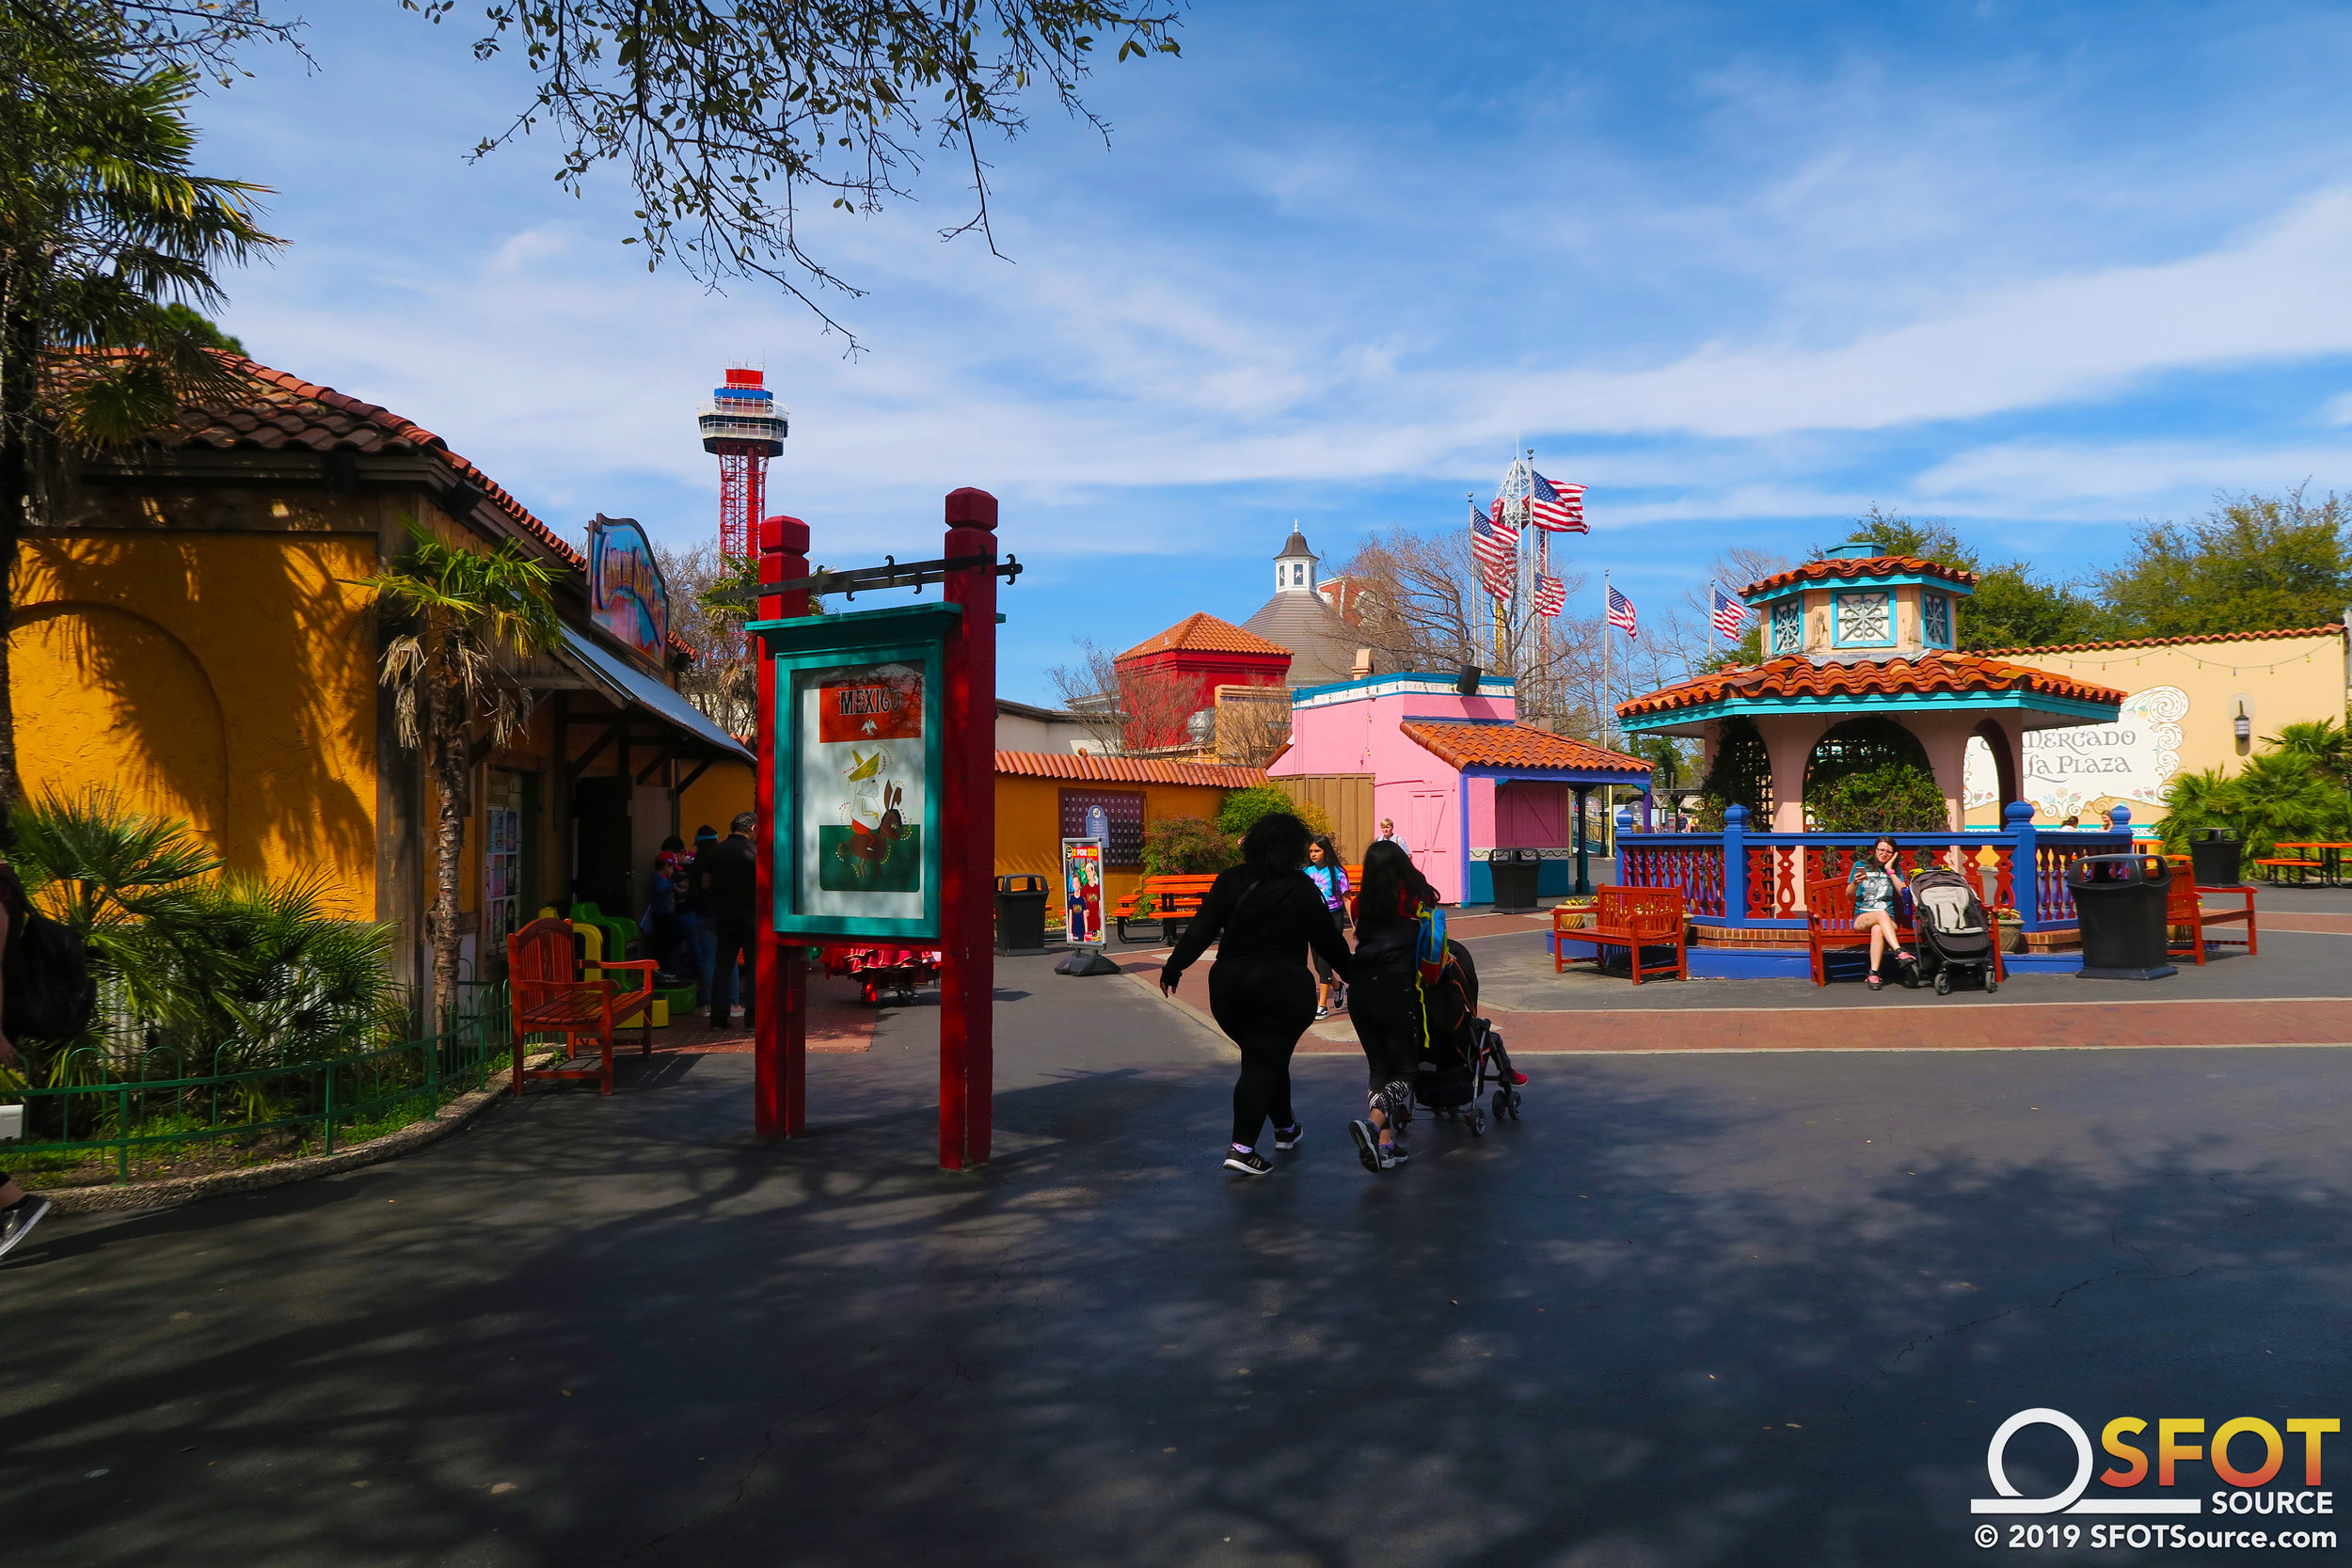 The main thoroughfare through Mexico looking towards the front of the park.